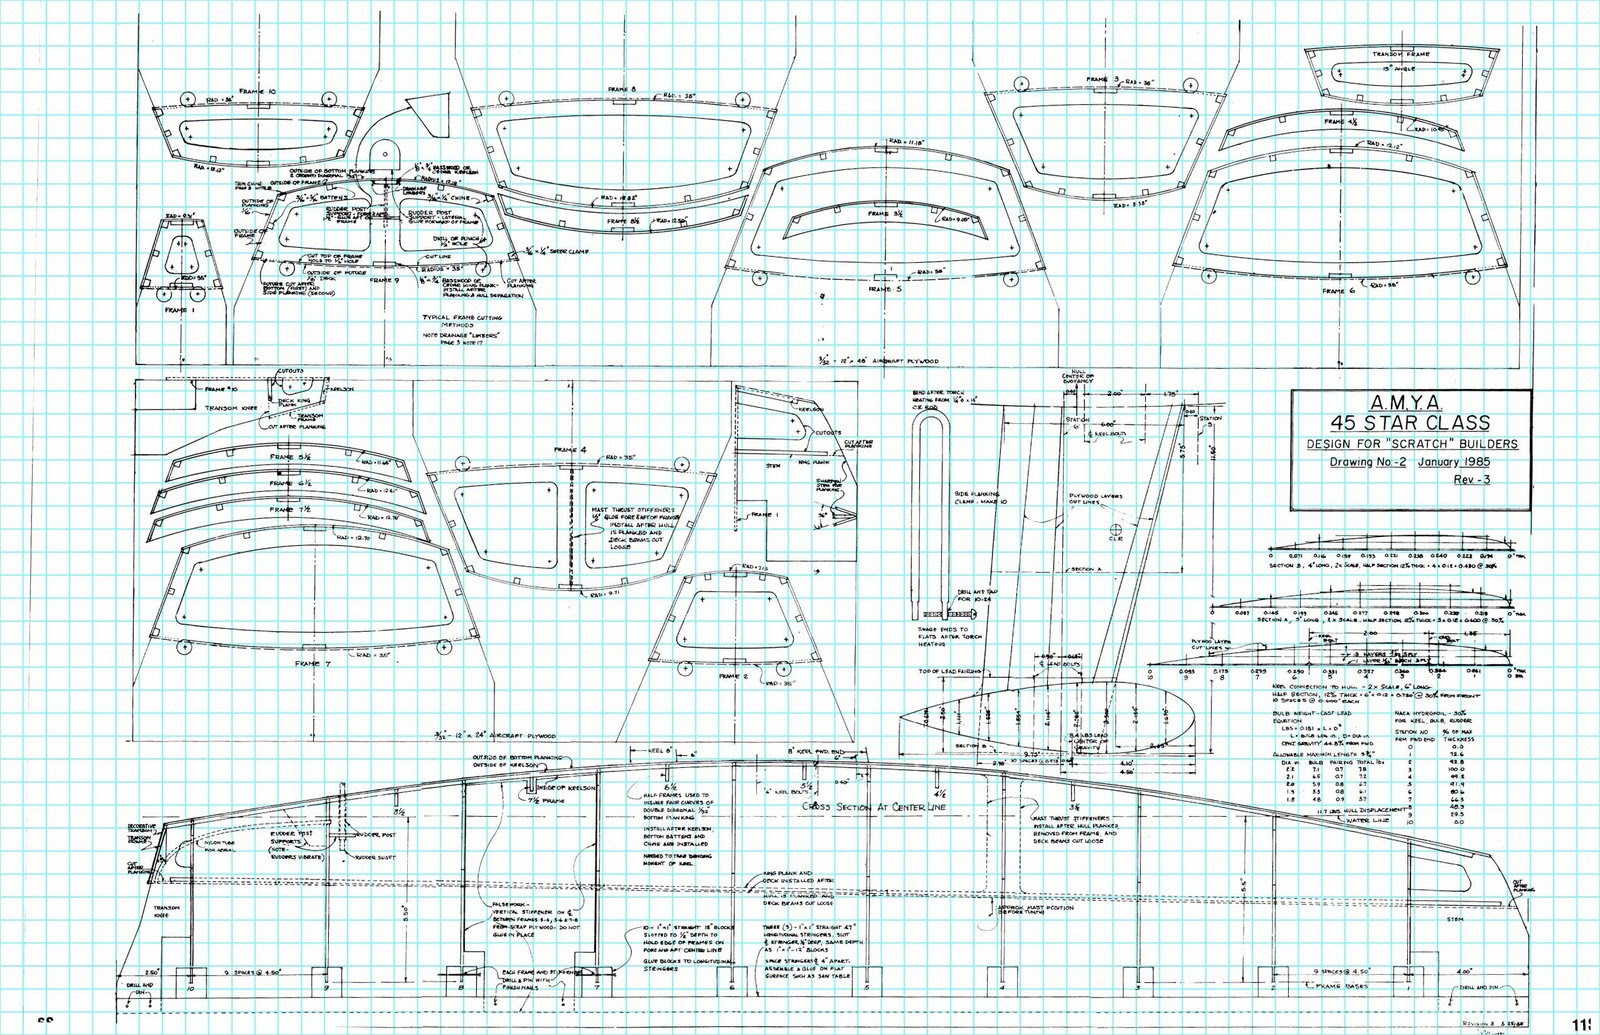 Model Sailboat Plans RC sailboat-easy quick steps to get started